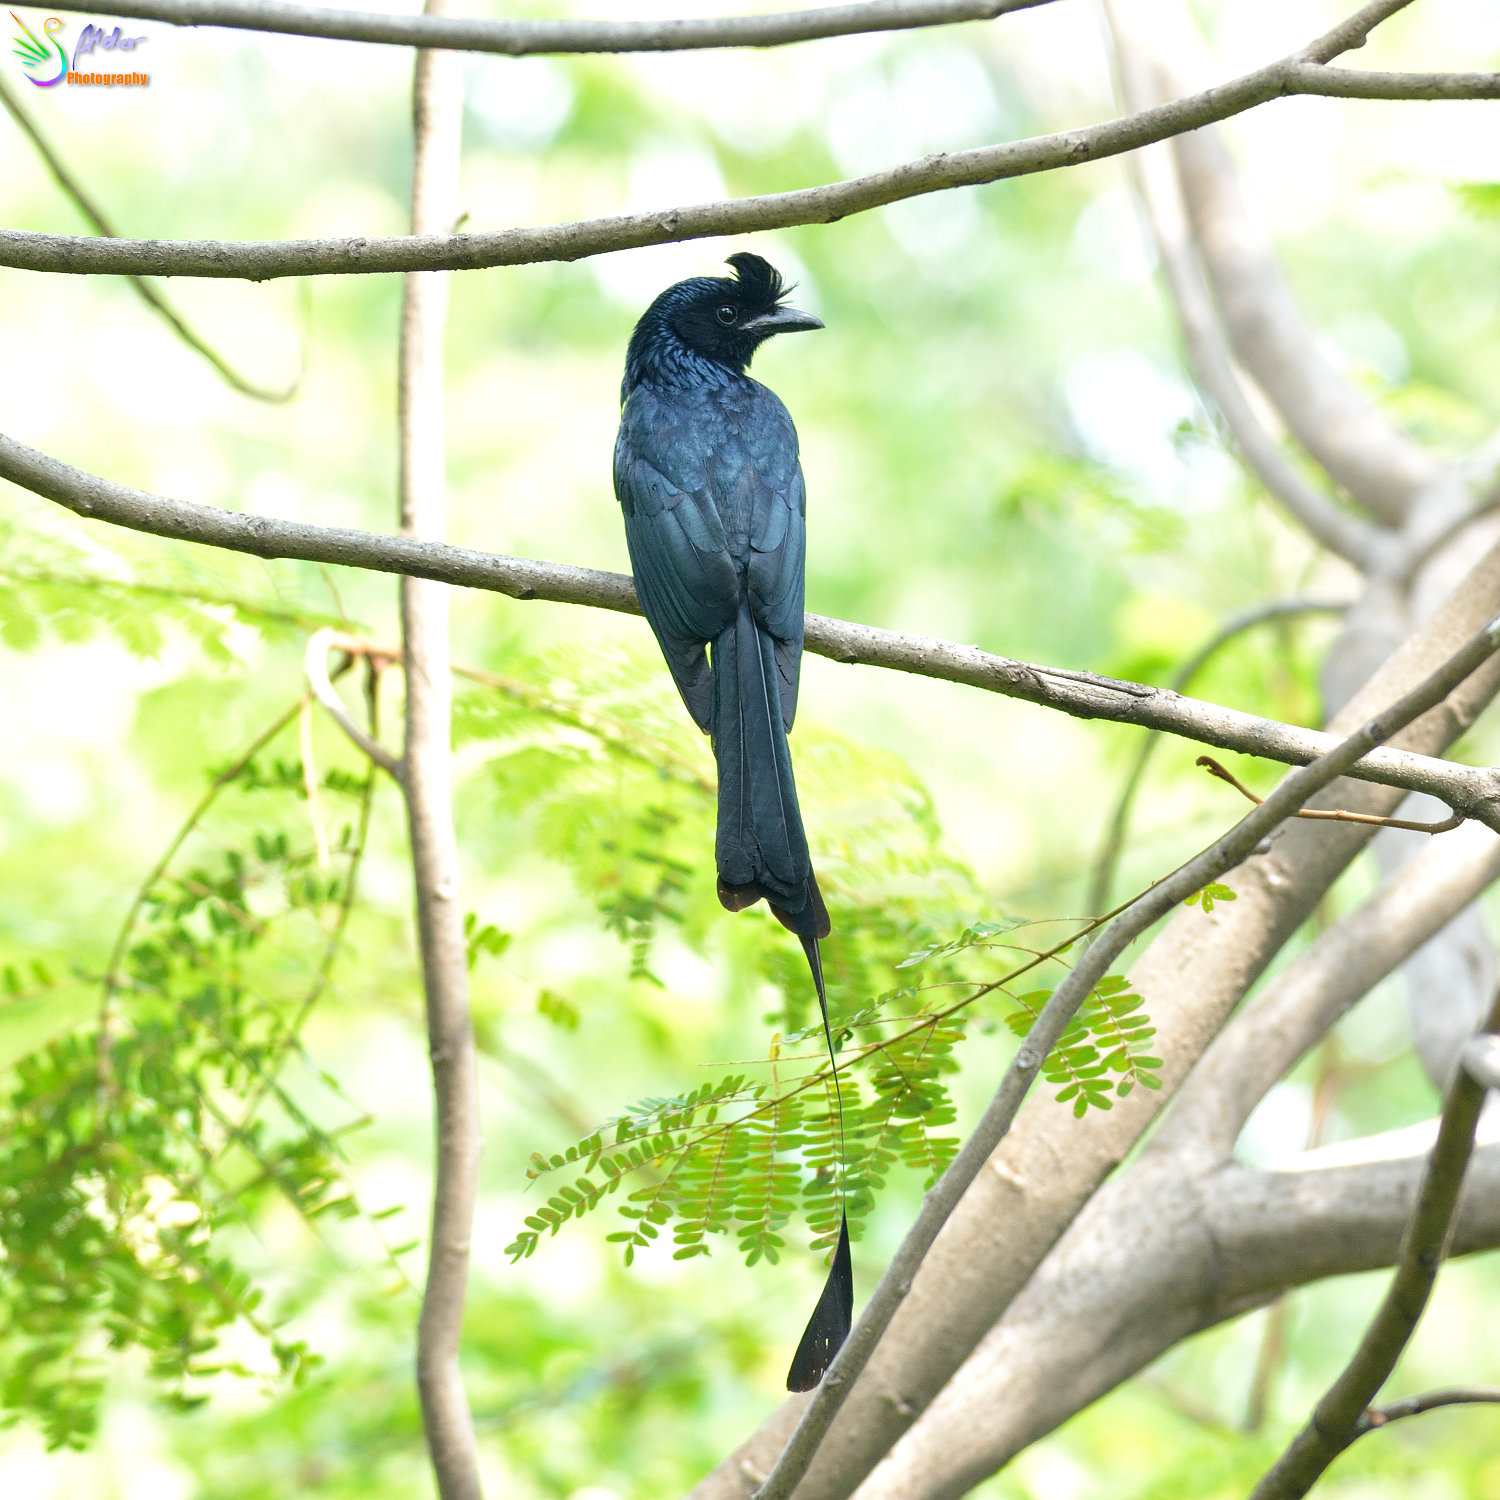 Greater_Racket-tailed_Drongo_1258